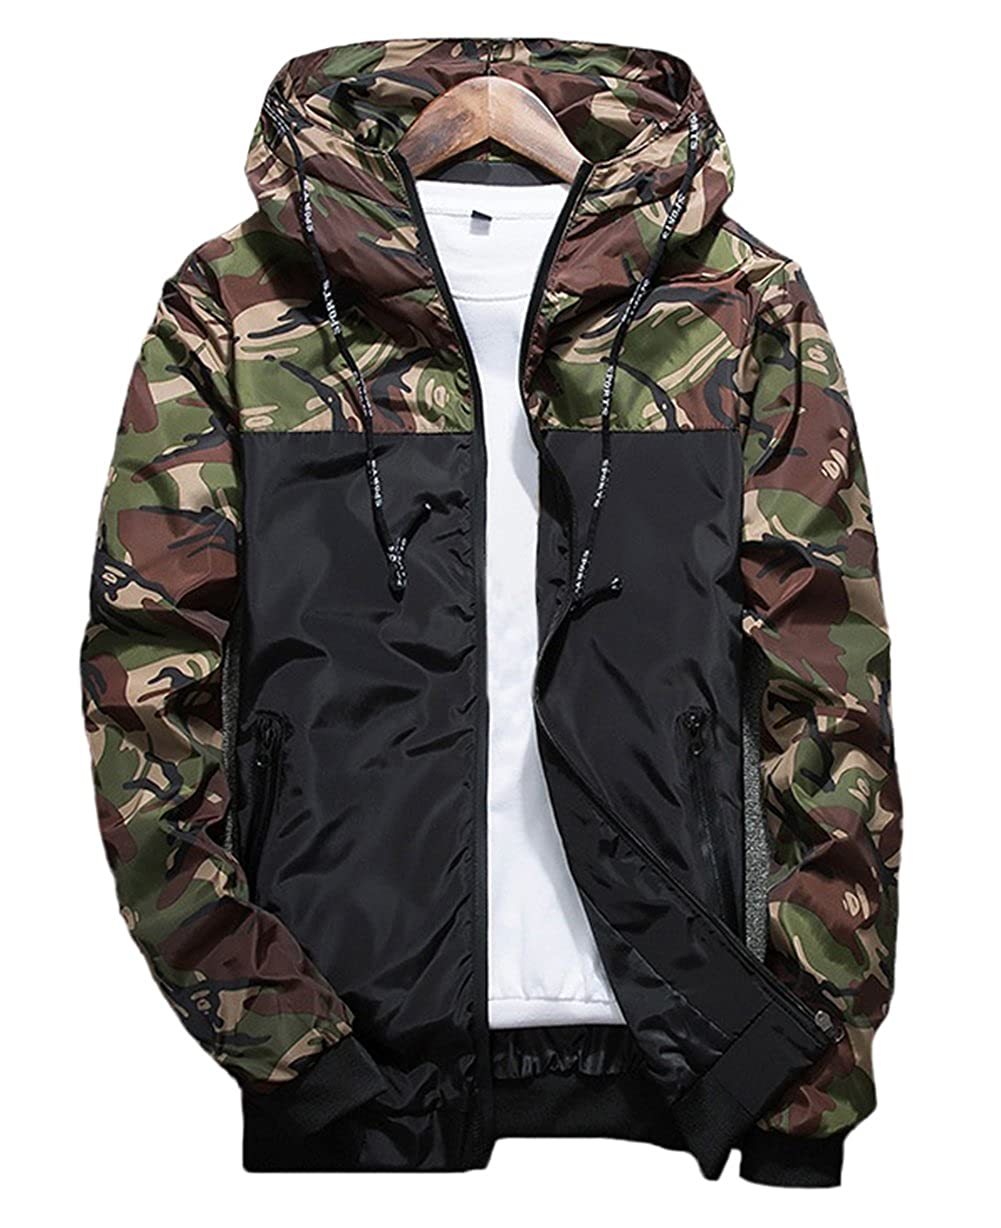 XARAZA Men's Long Sleeve Camo Hoodie Jacket Outwear Hooded Windbreaker Winter Clothes